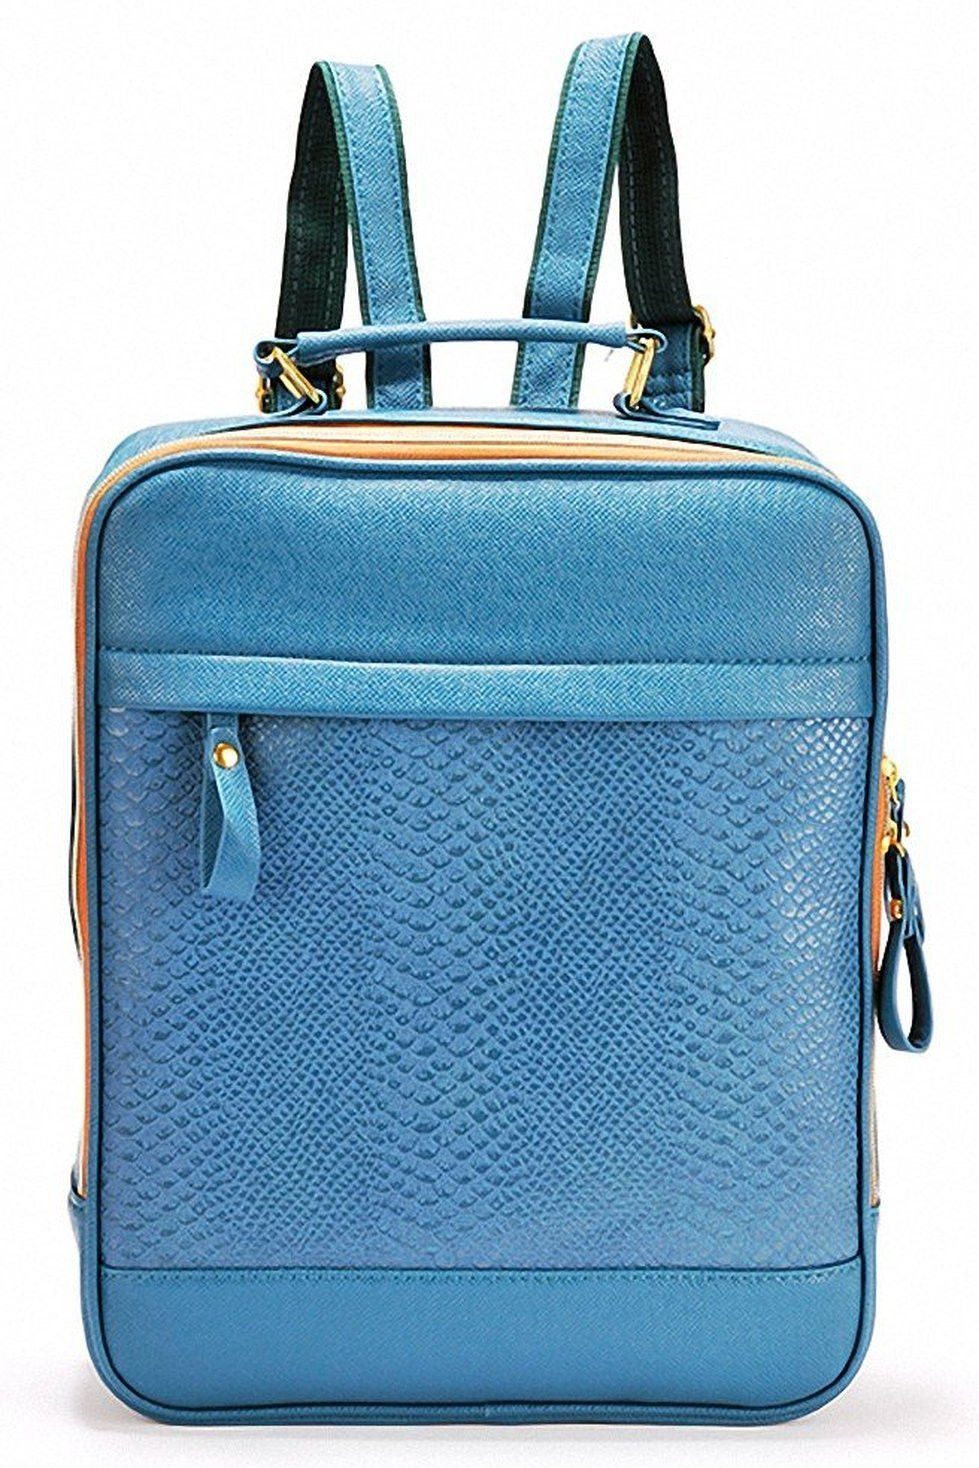 Blue Backpack With Zip Detail